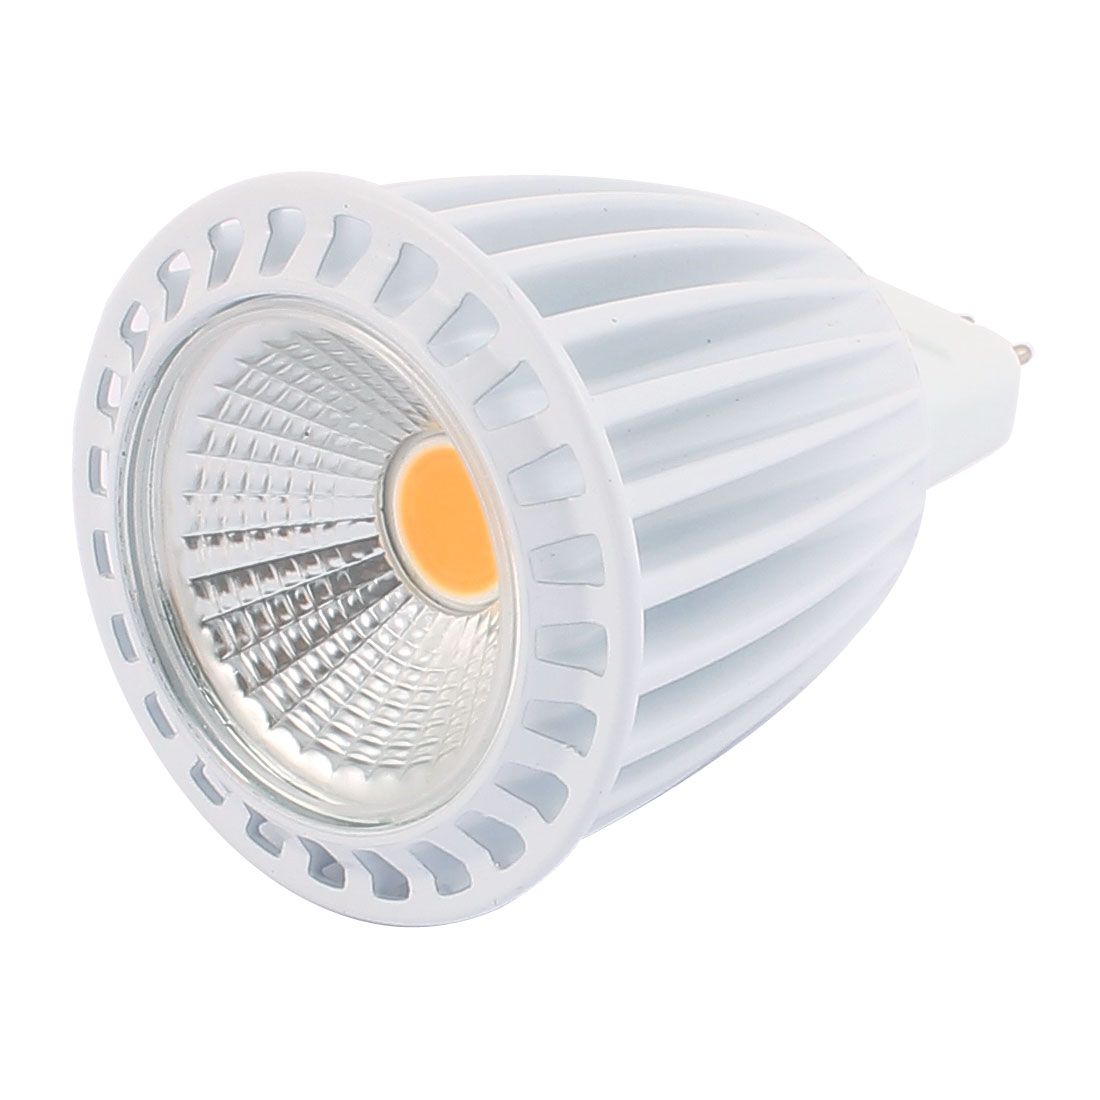 DC12V 7W MR16 COB Integrated Chip LED Spotlight Lamp Bulb Downlight Warm White